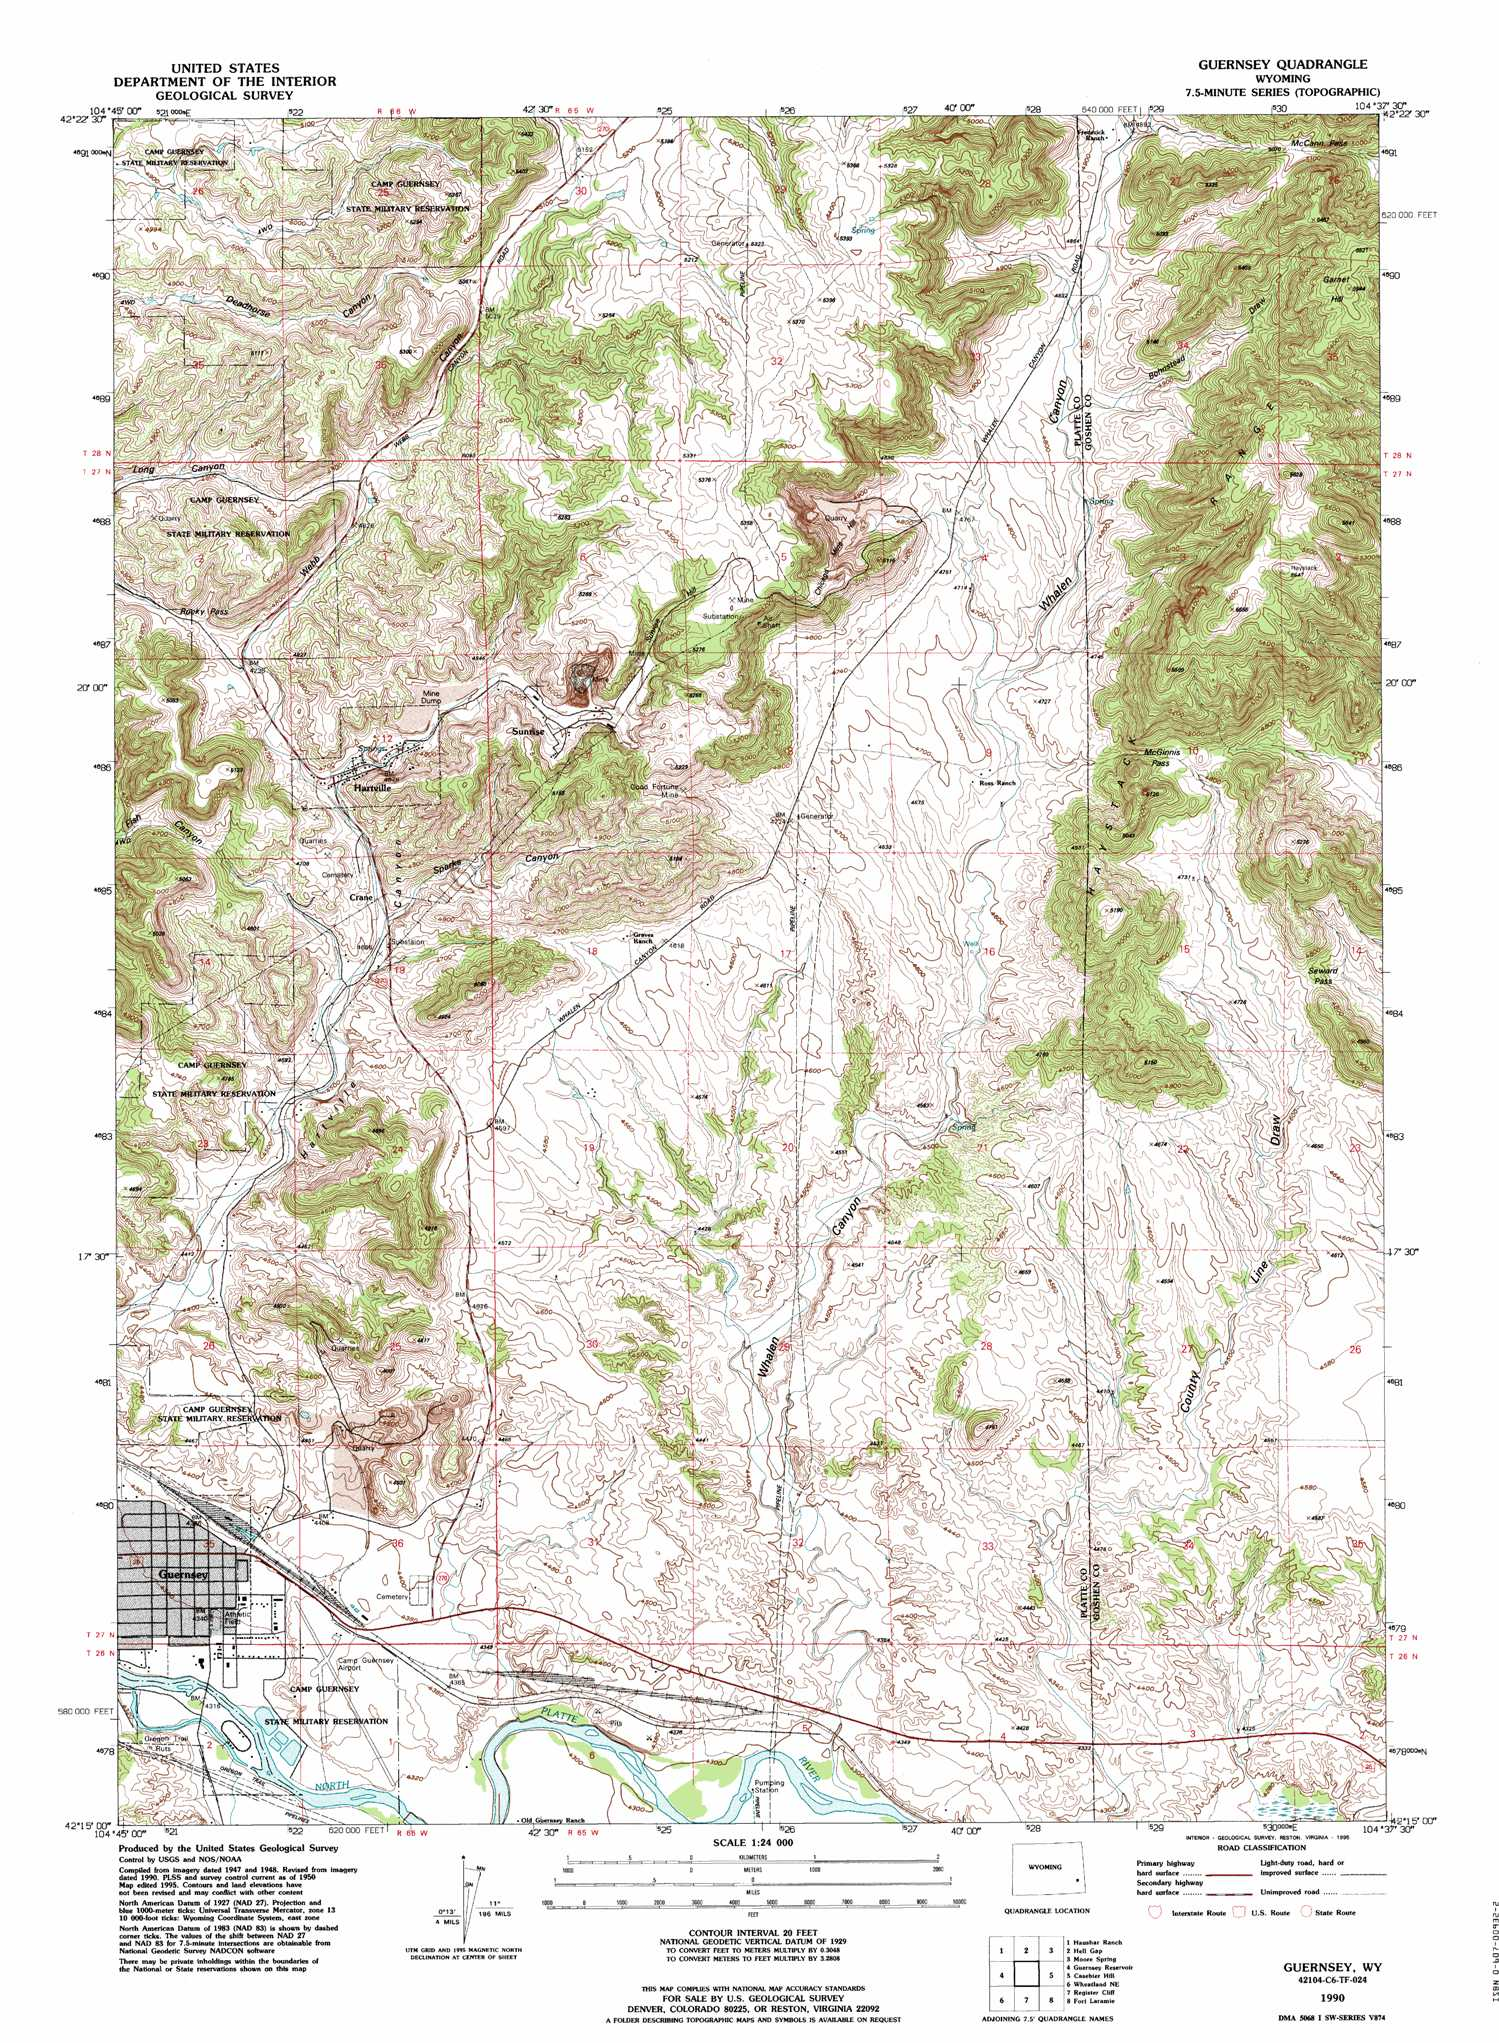 Guernsey topographic map, WY   USGS Topo Quad 42104c6